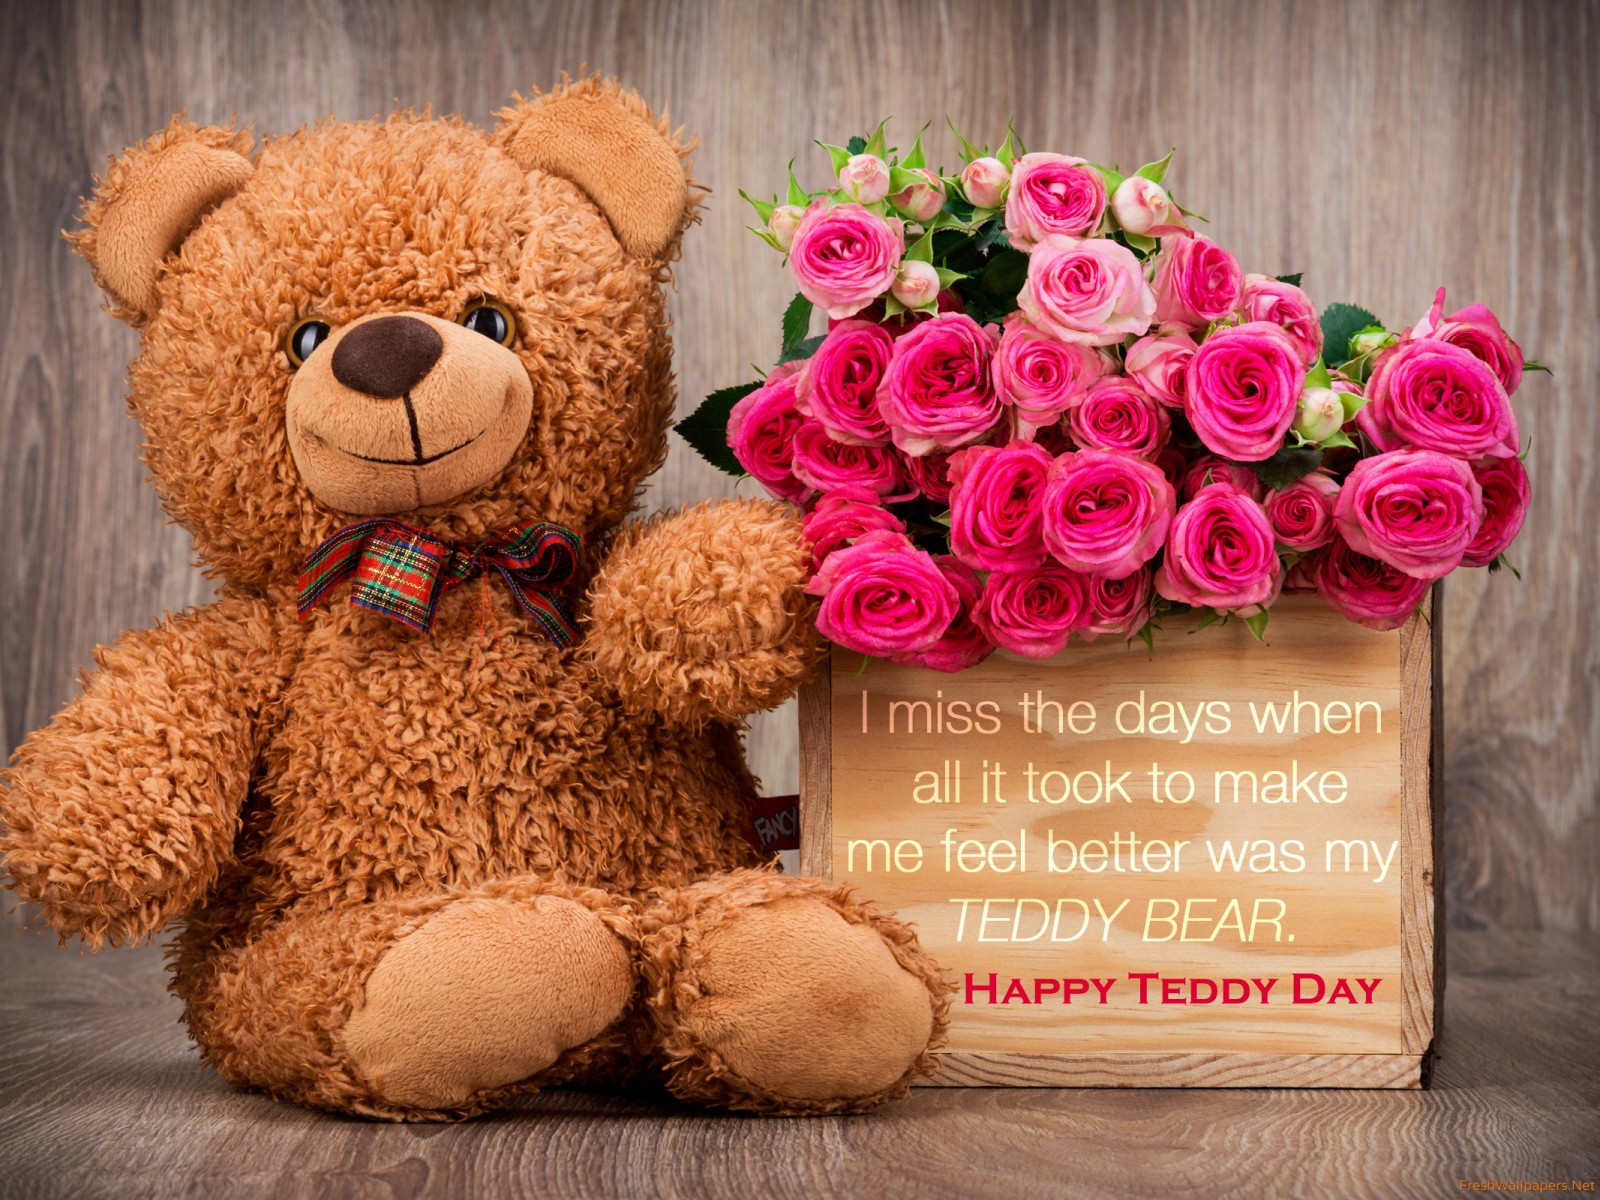 Teddy-Day-Wide-HD-Wallpaper